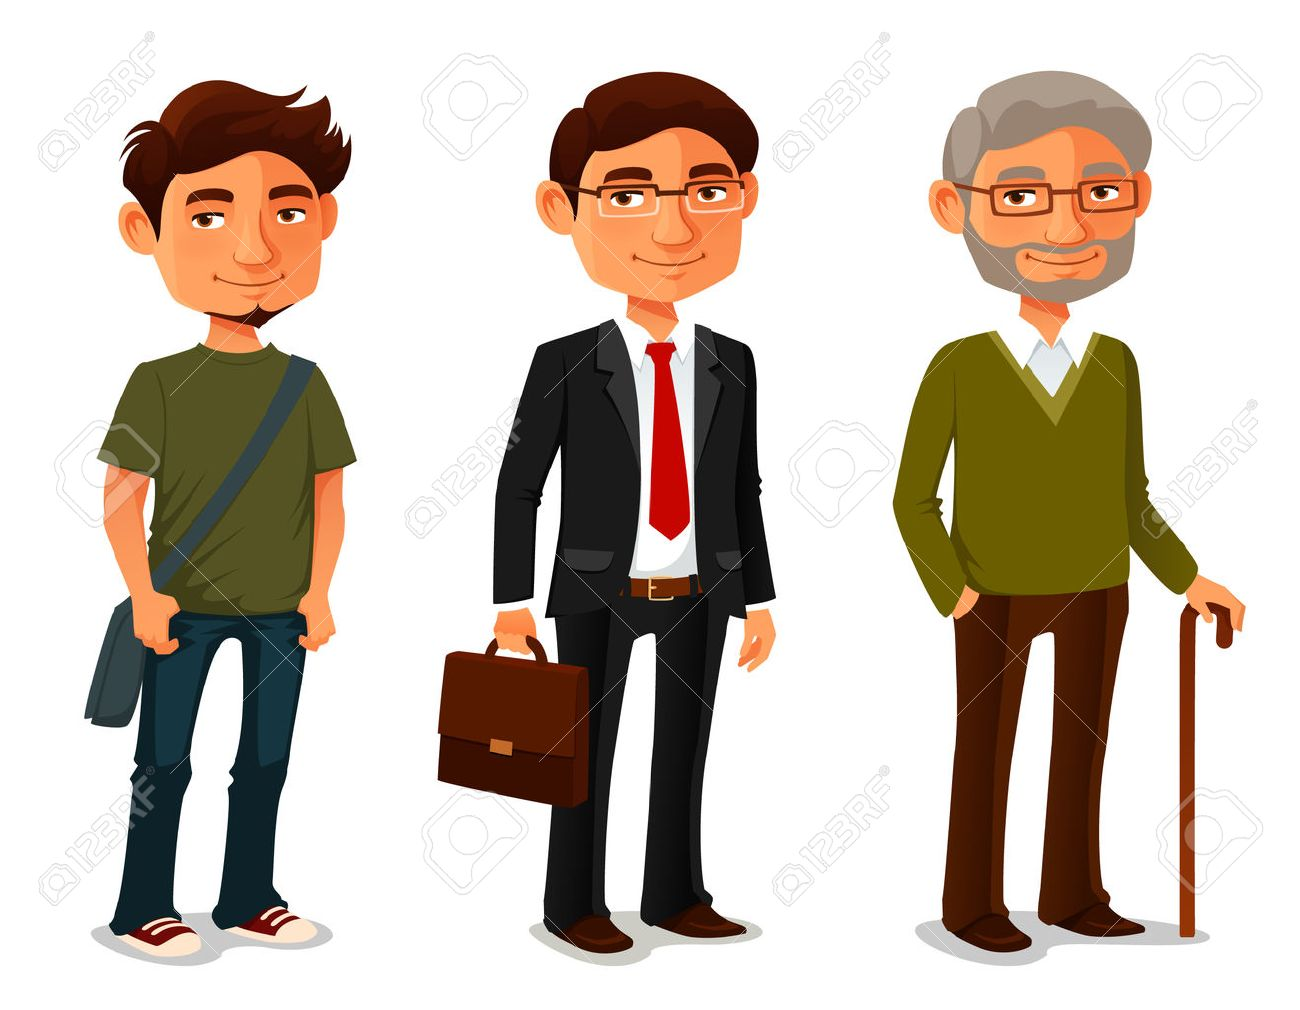 cartoon characters showing age progress royalty free cliparts